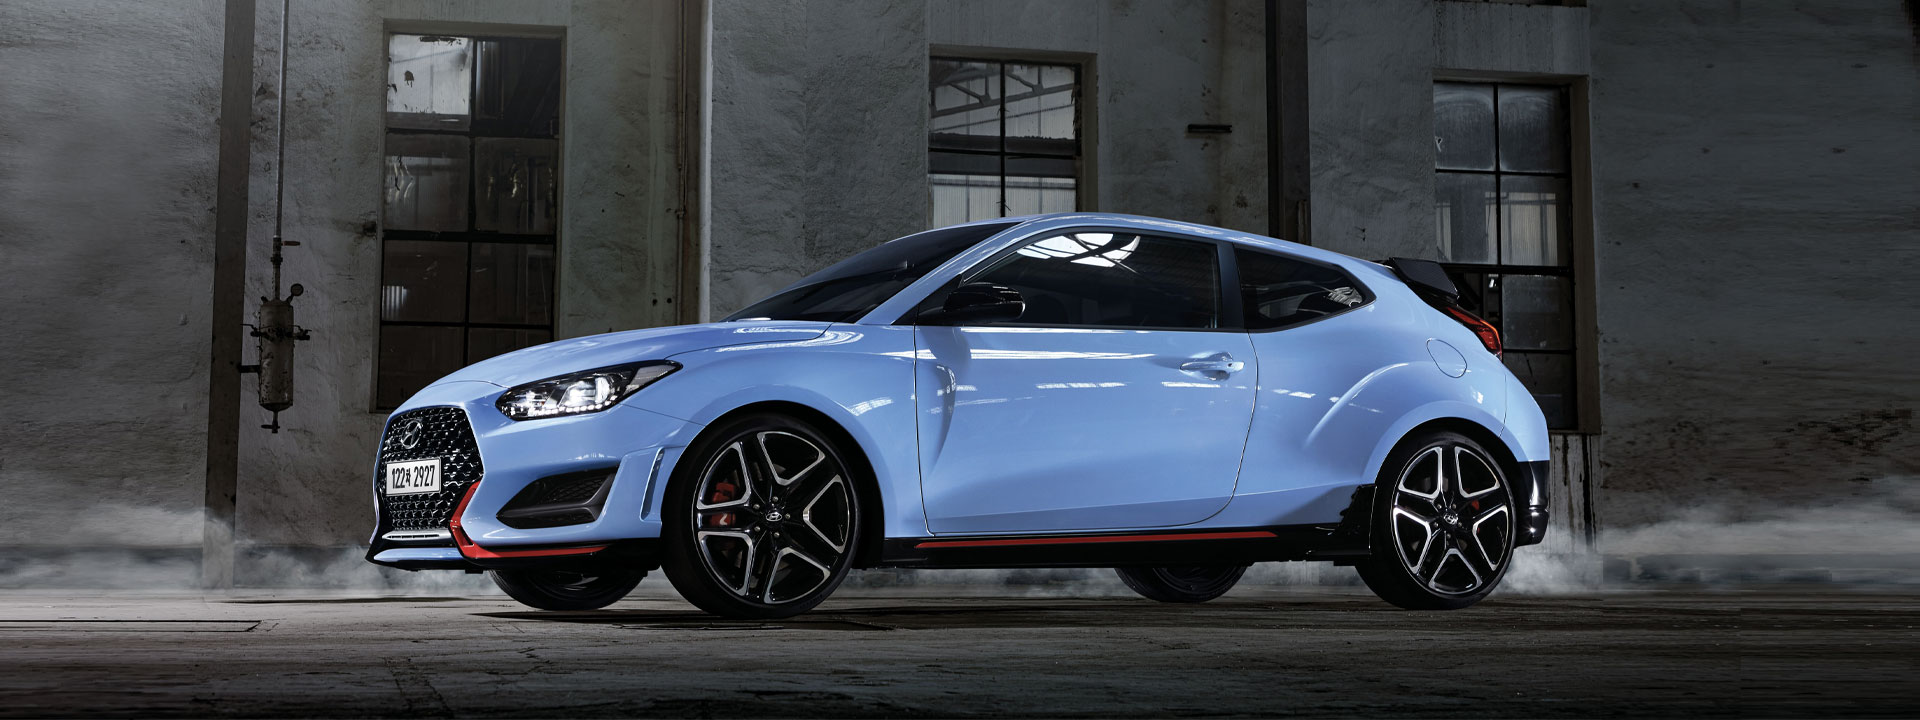 Hyundai unveils the new Veloster N with 8-Speed DCT.